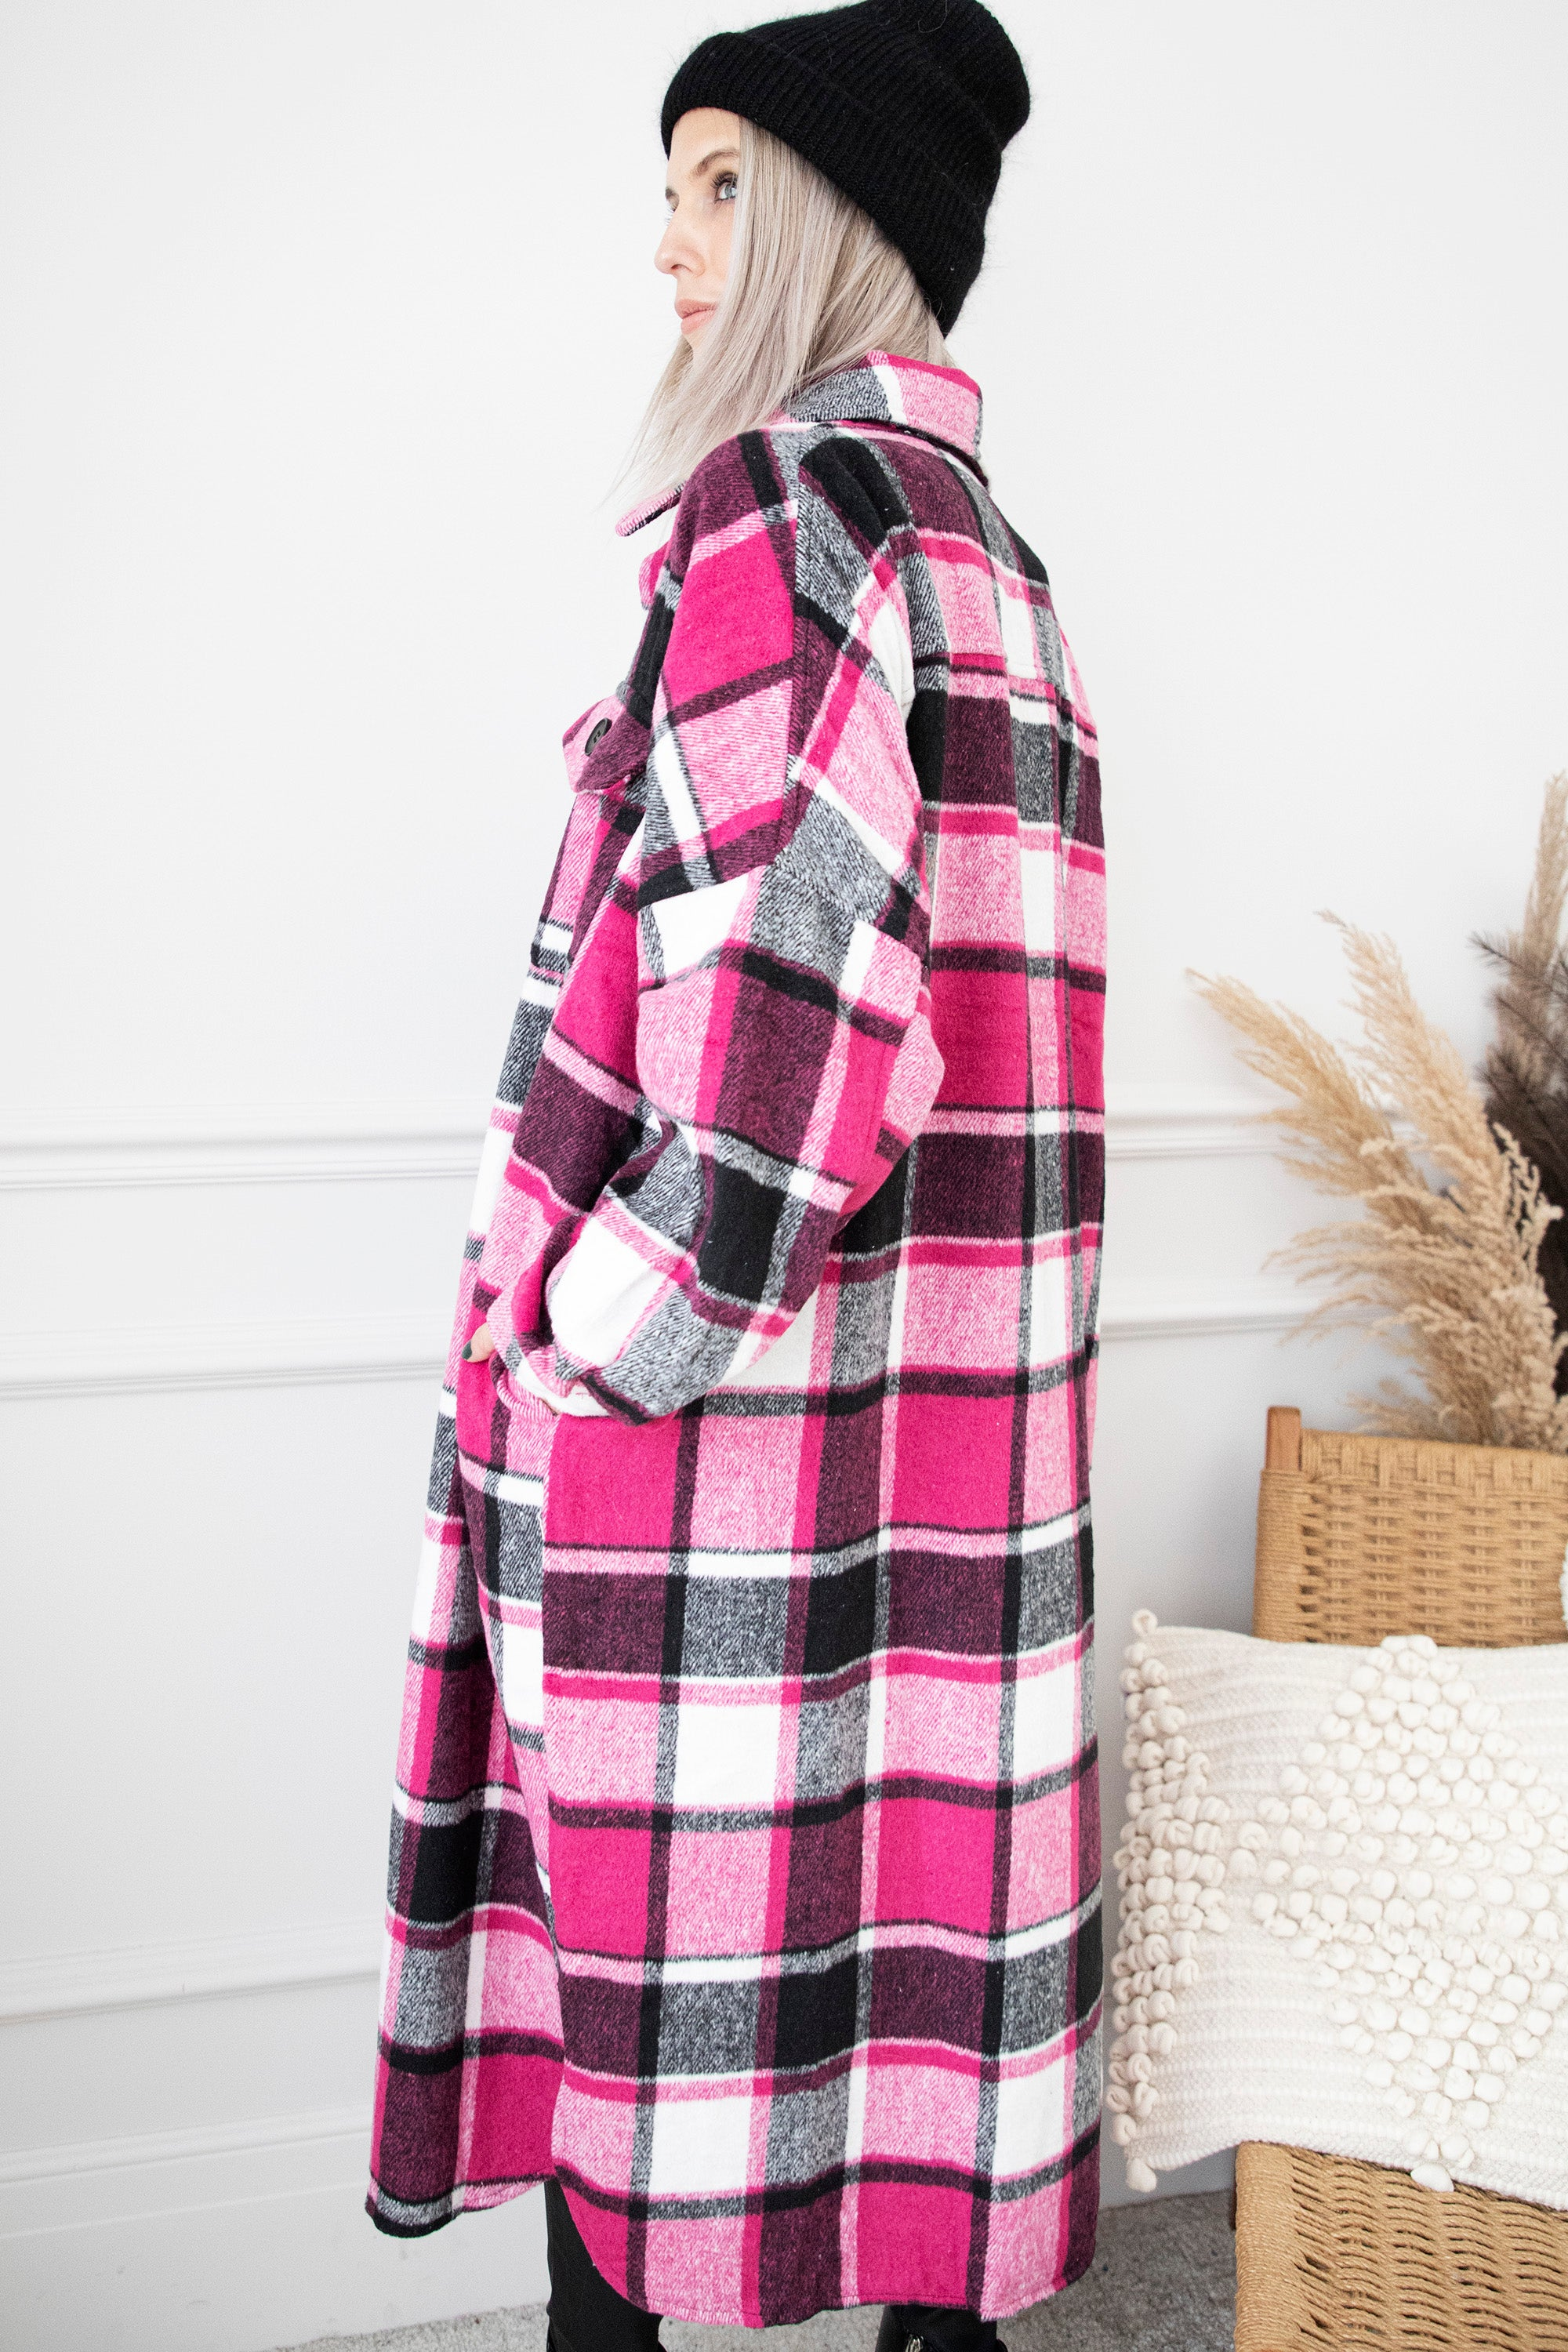 Dress Like A Lumberjack Fuchsia - Gilet/Jurk